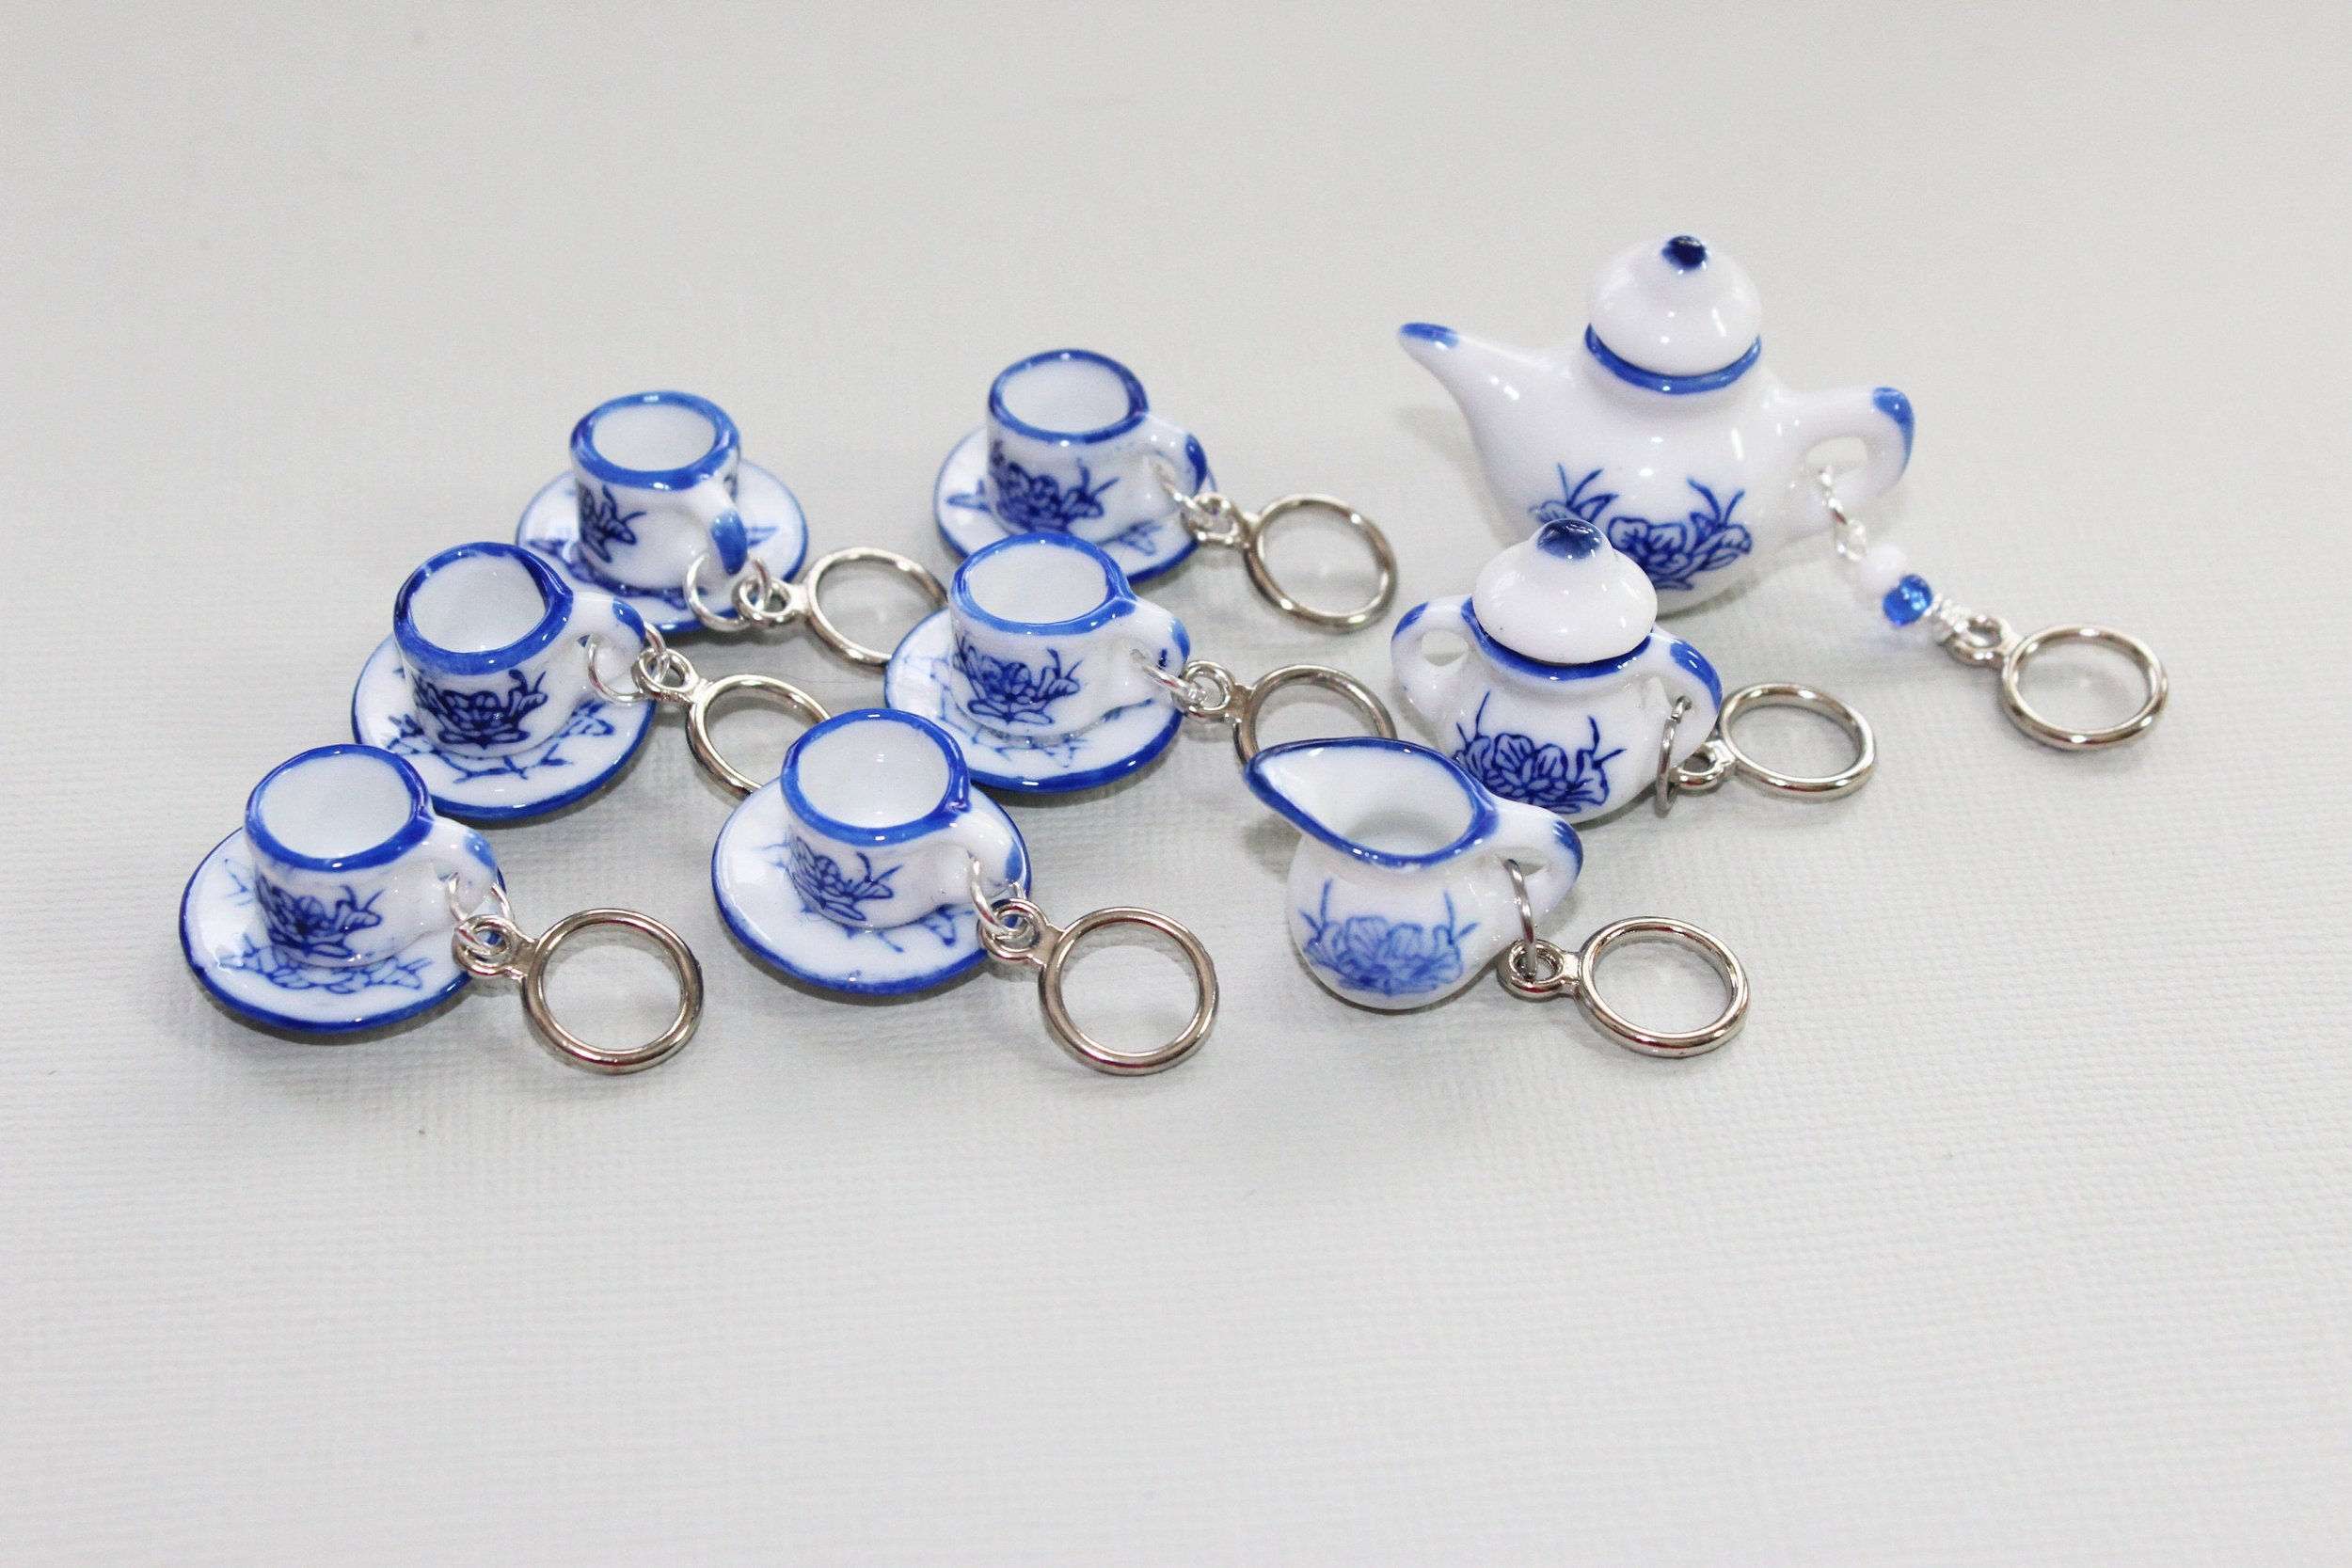 Tiny Blue and White China Tea Set Stitch Markers for Knitters